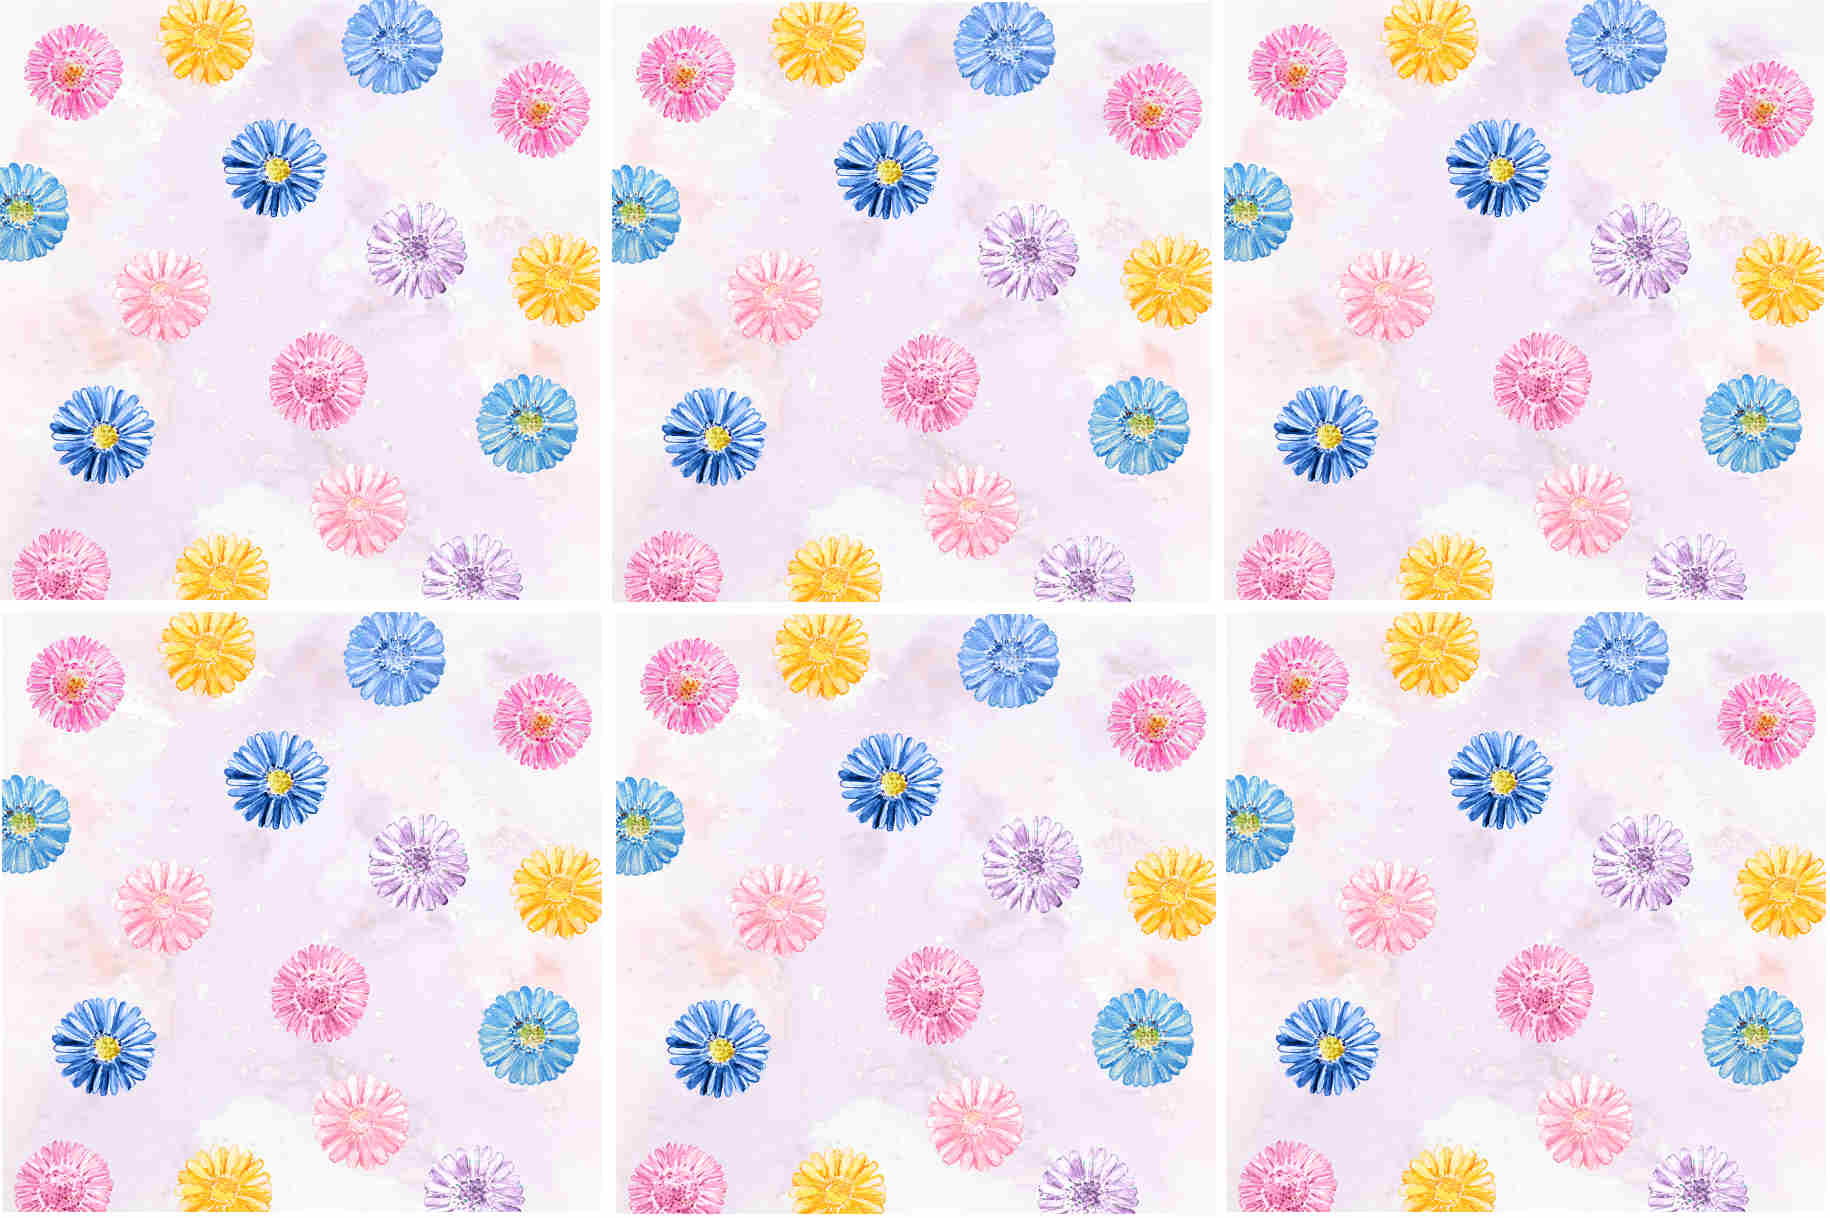 Pink Daisy pattern ceramic wall tile - design example